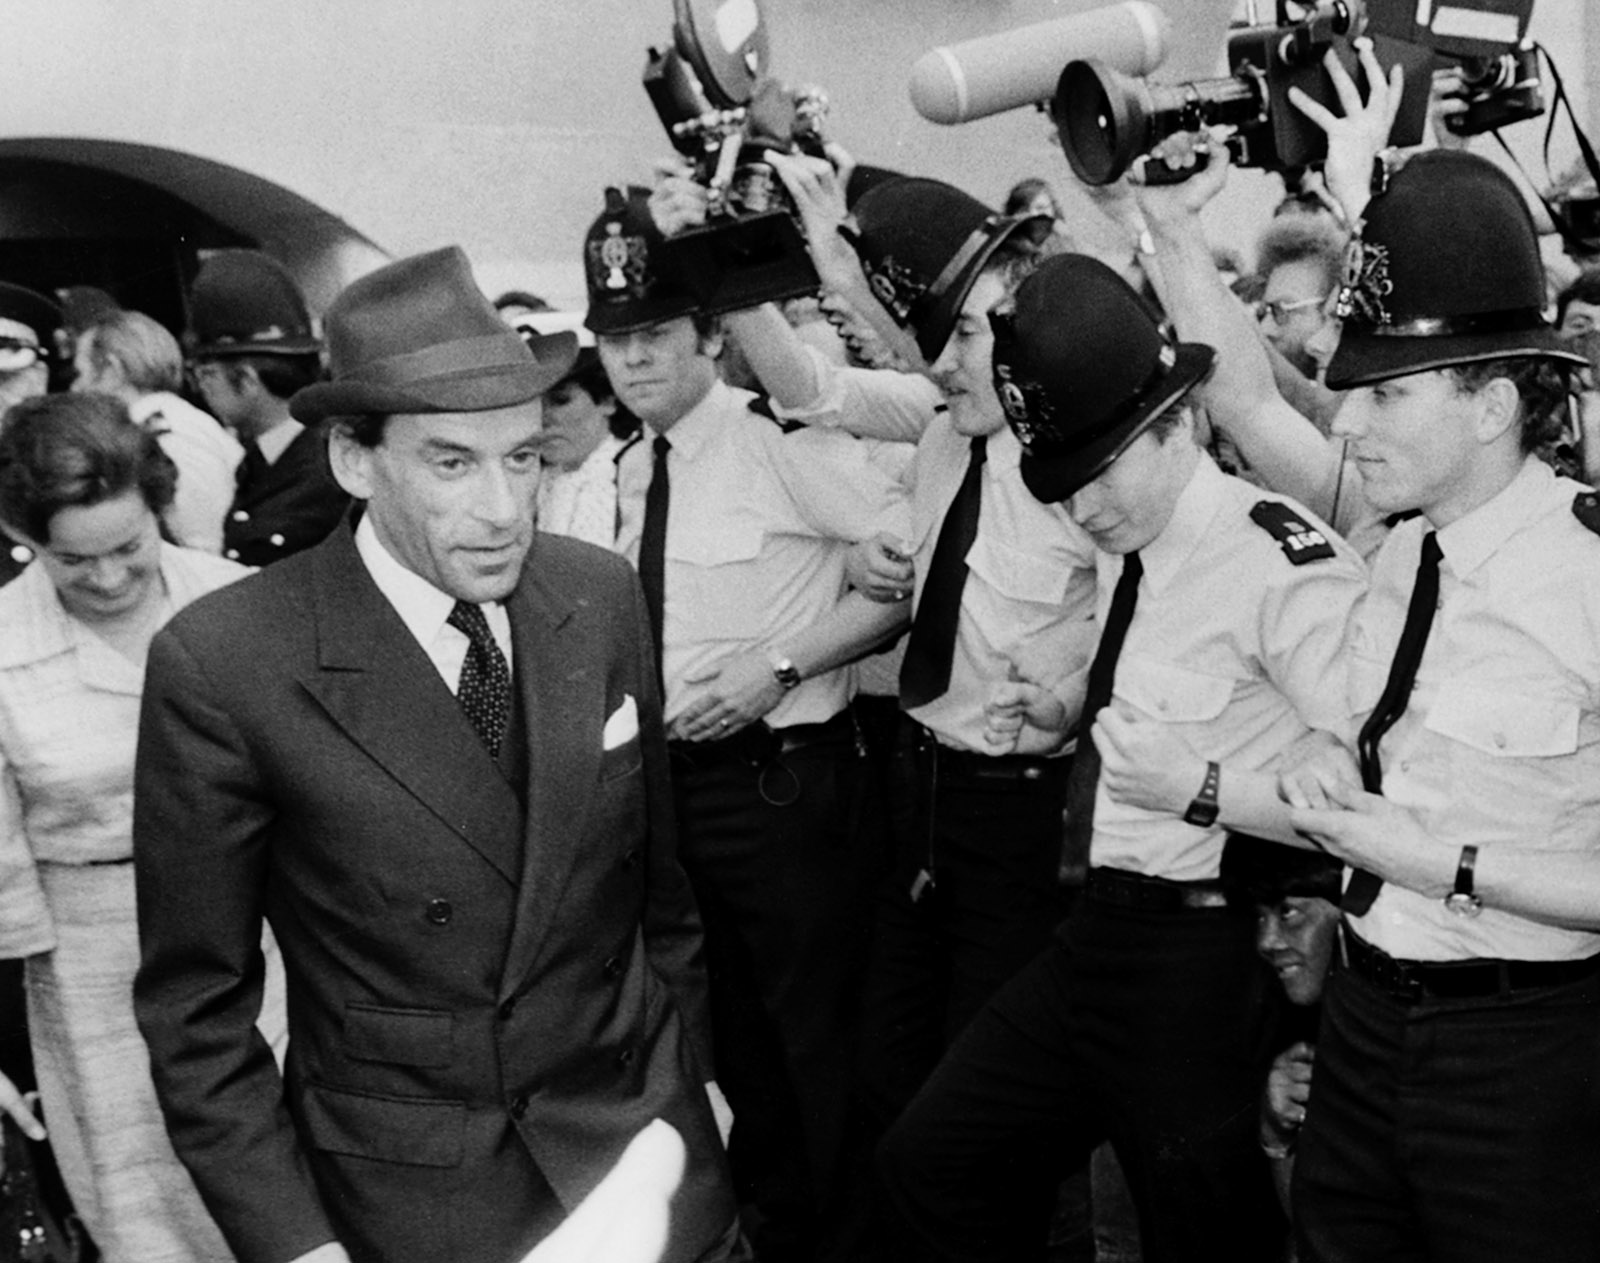 Former Liberal Party leader Jeremy Thorpe leaving the Old Bailey with his wife, Marion, after he was found not guilty of conspiracy to murder, London, June 1979